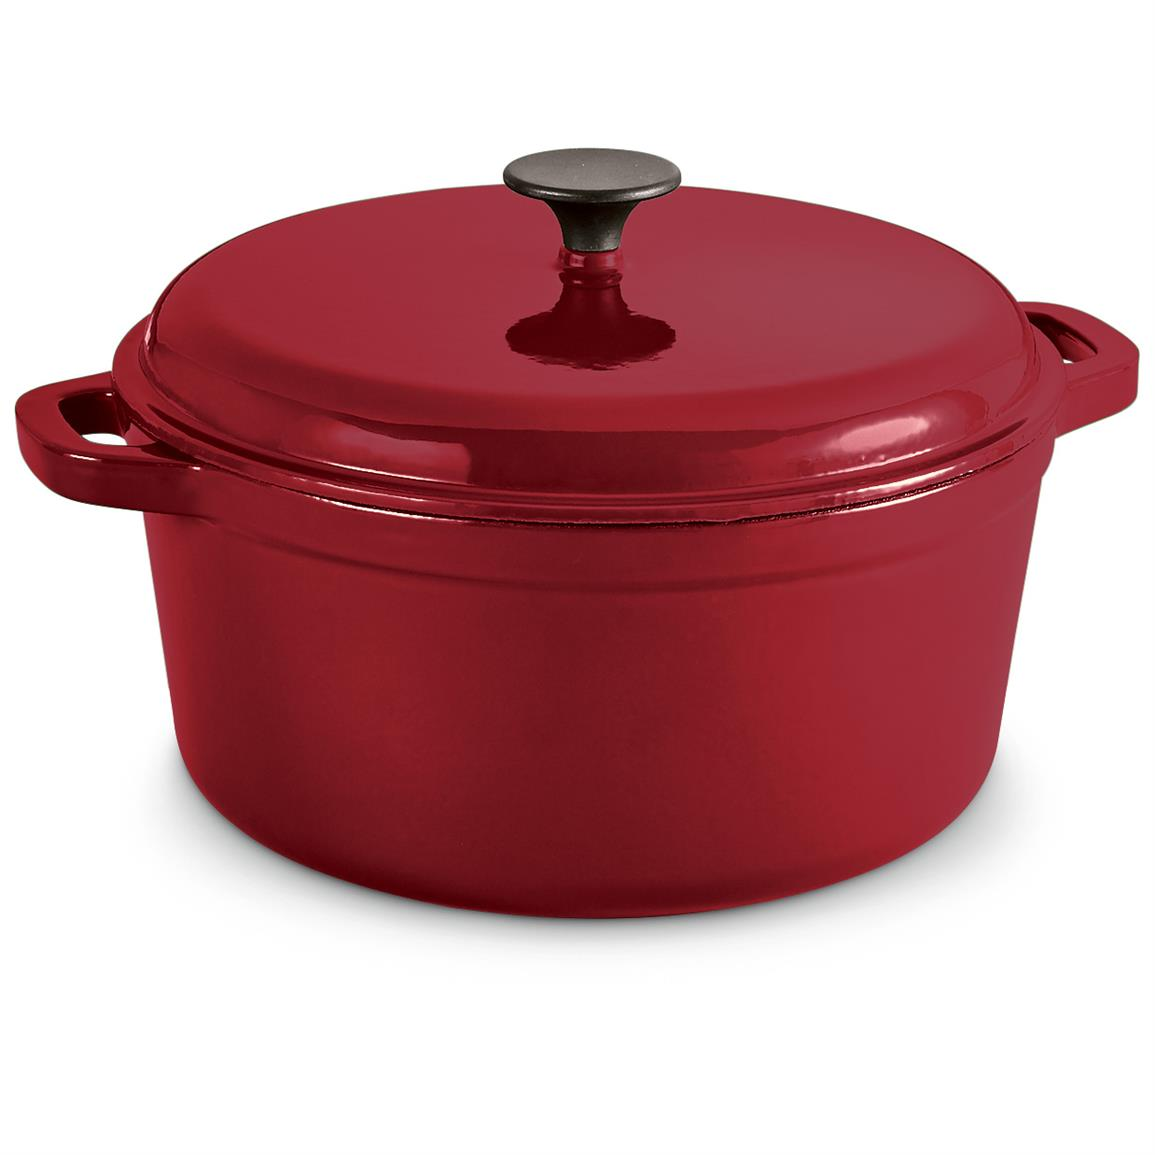 CASTLECREEK Enameled Cast Iron 6.5-liter Dutch Oven with Lid, Red